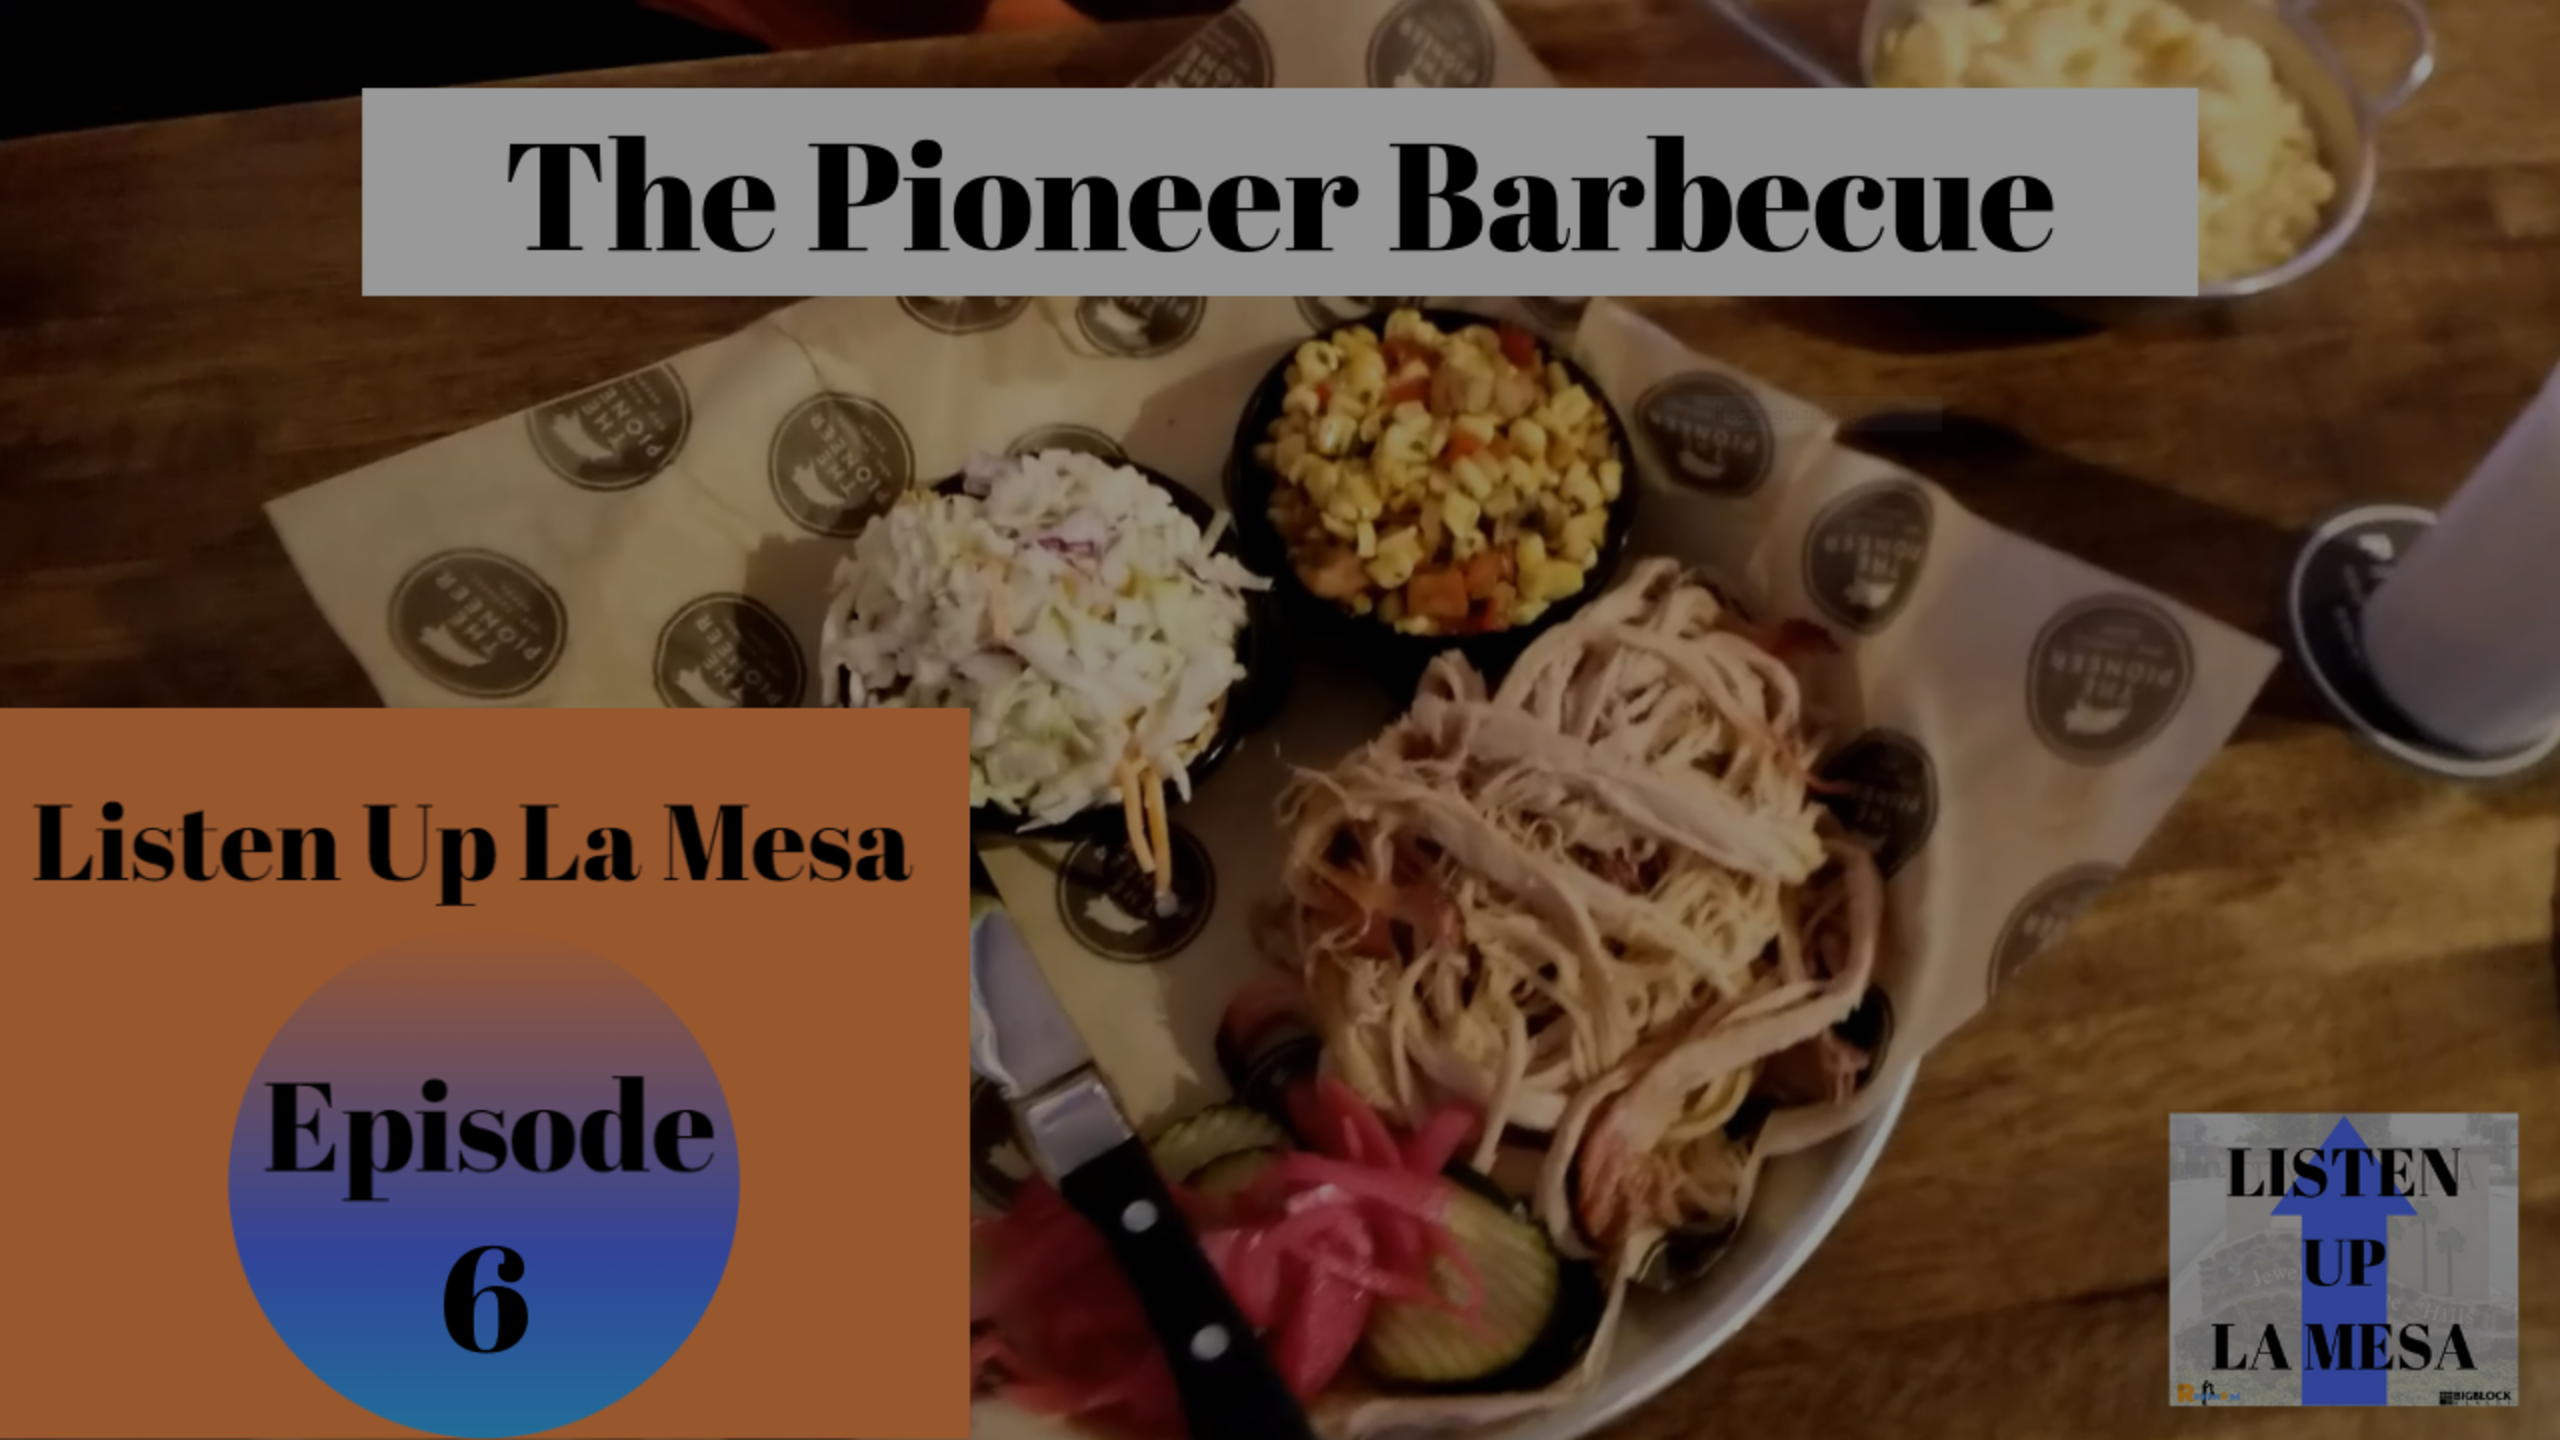 Listen Up La Mesa Ep:6 The Pioneer BBQ in San Carlos